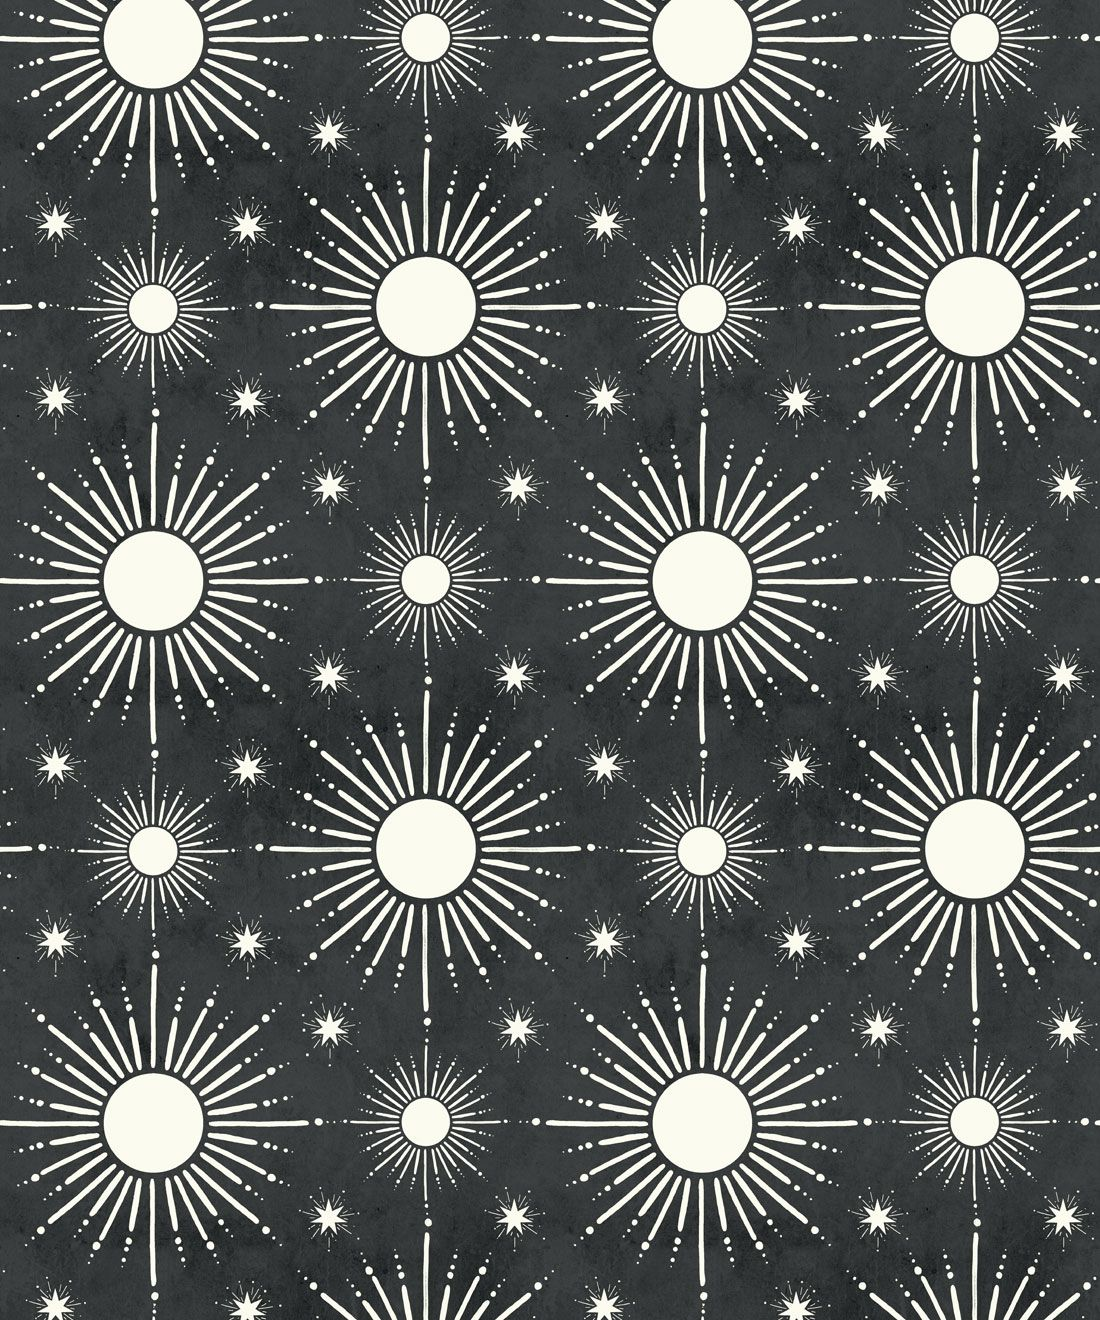 Sun Light Star Bright Wallpaper